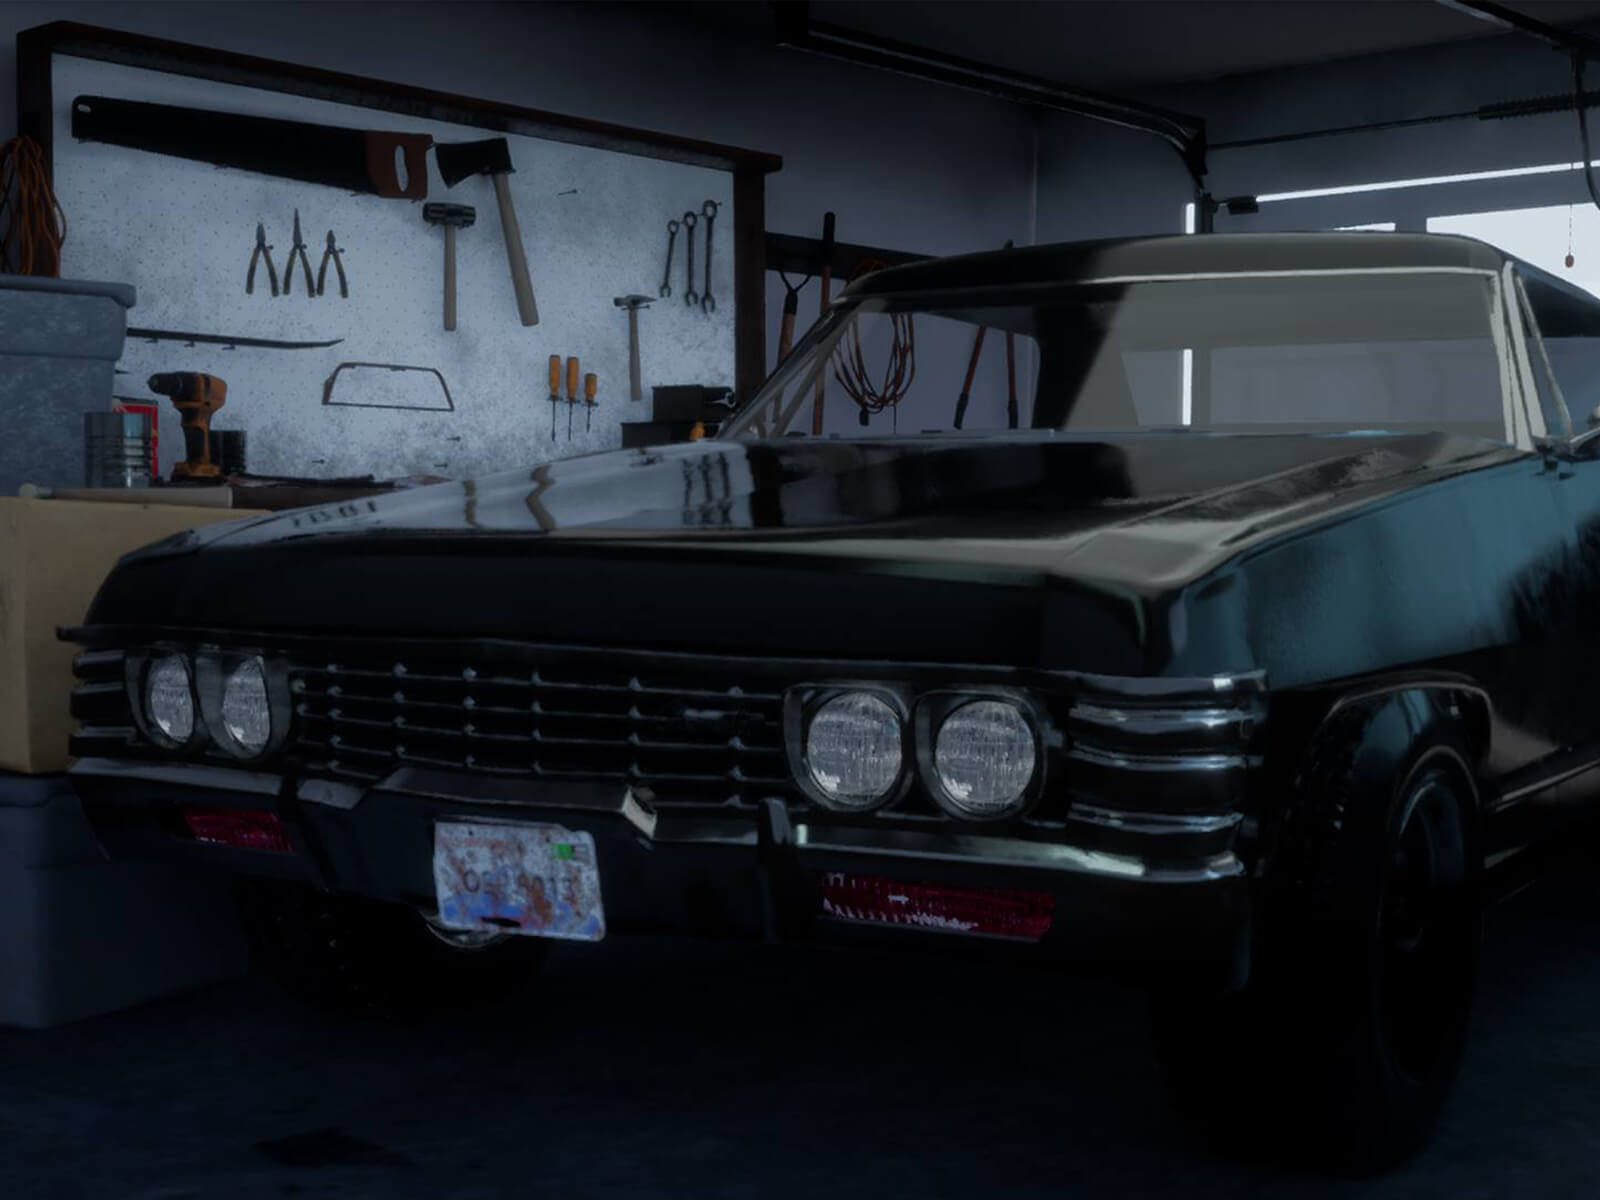 A muscle car in a closed home garage